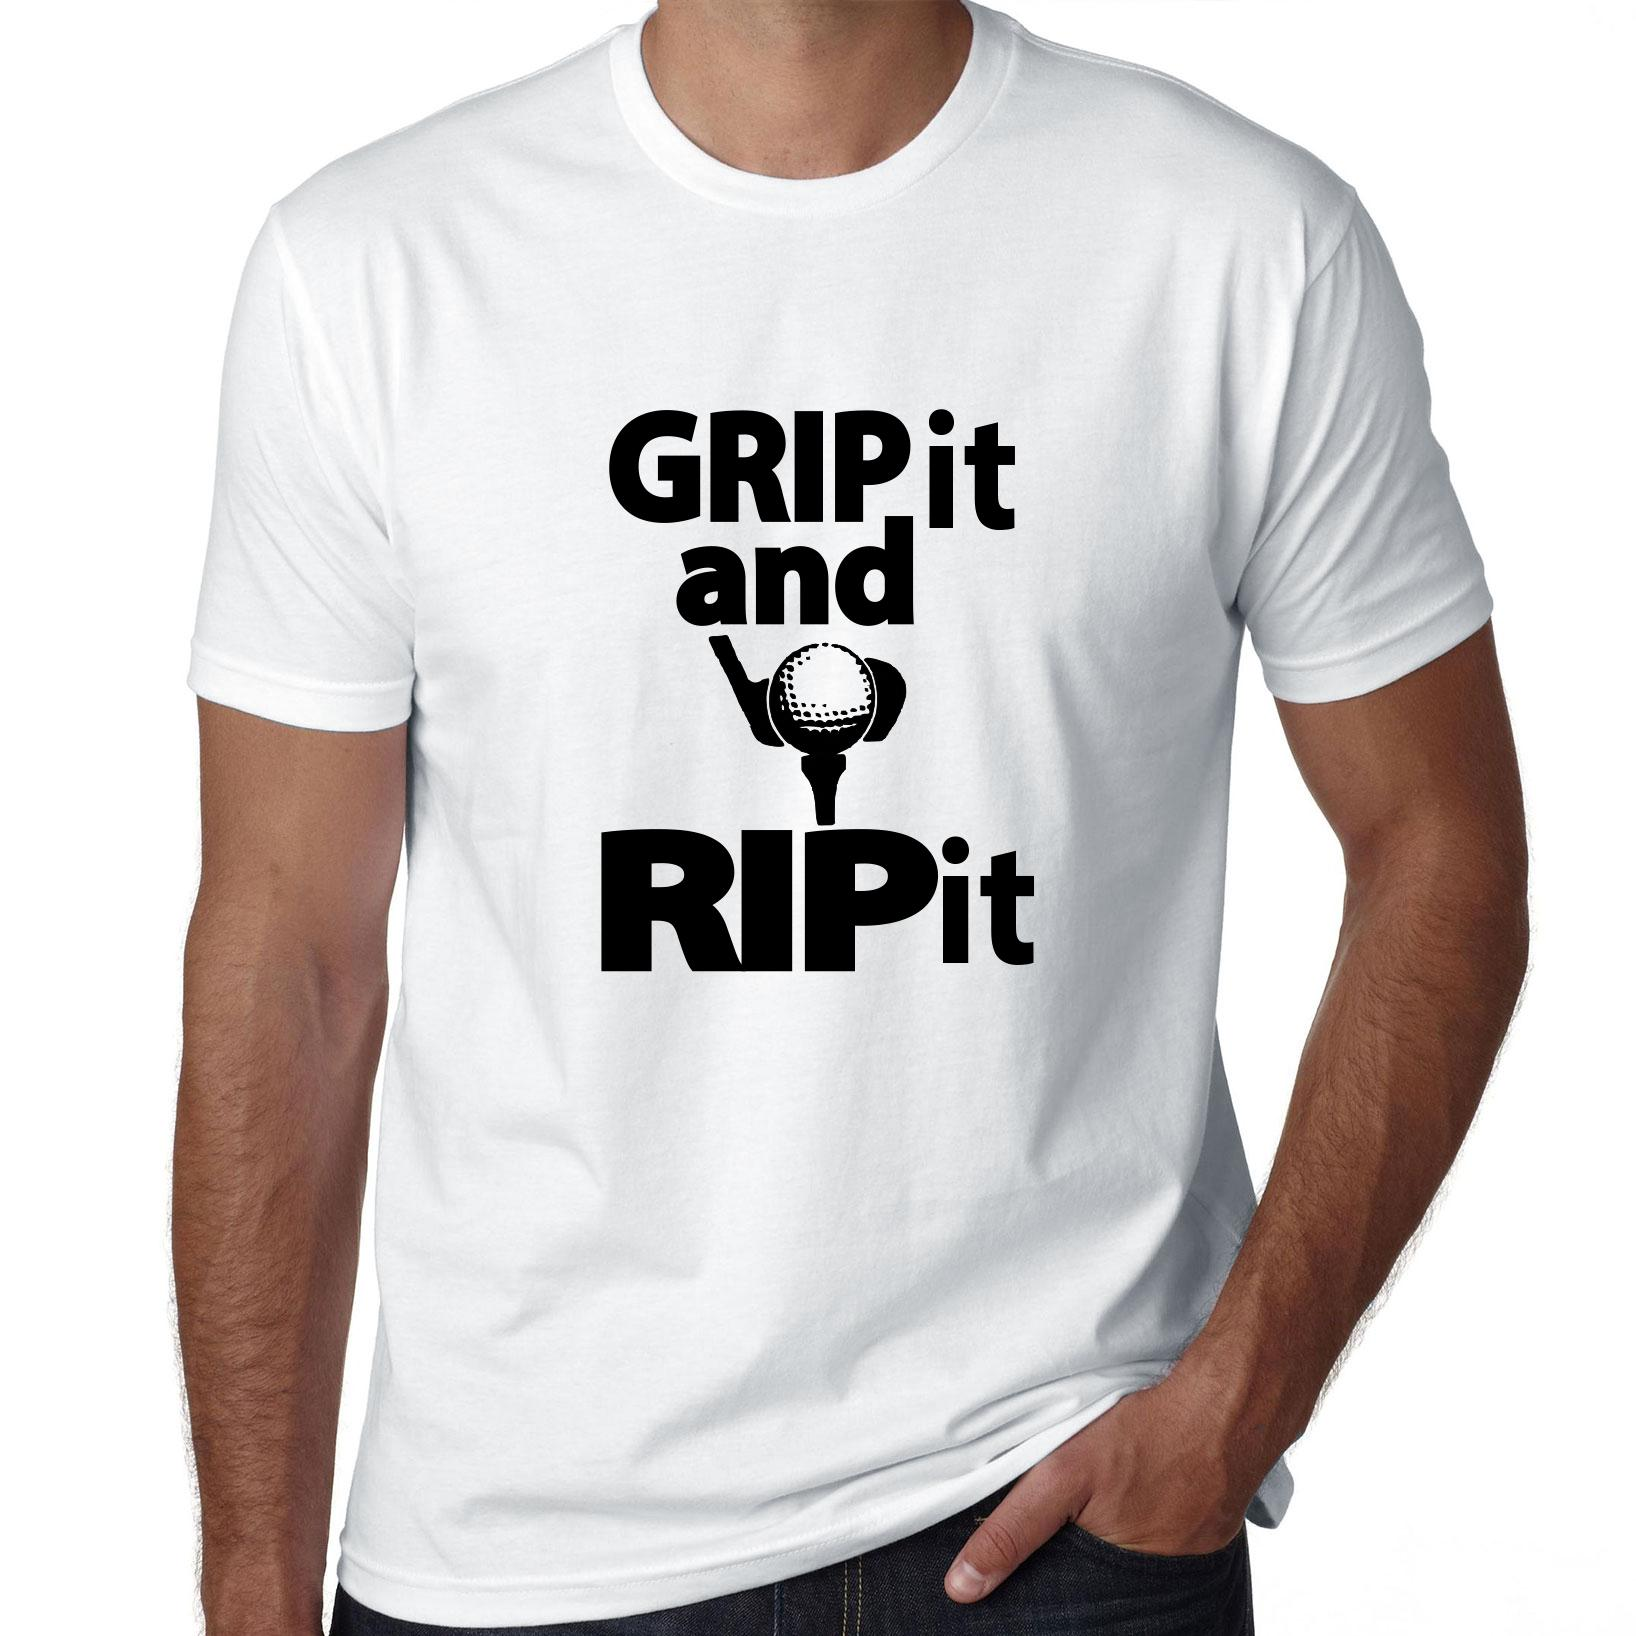 Grip It and Rip It! - Golf Club & Ball Teed Up Driving Men's T-Shirt